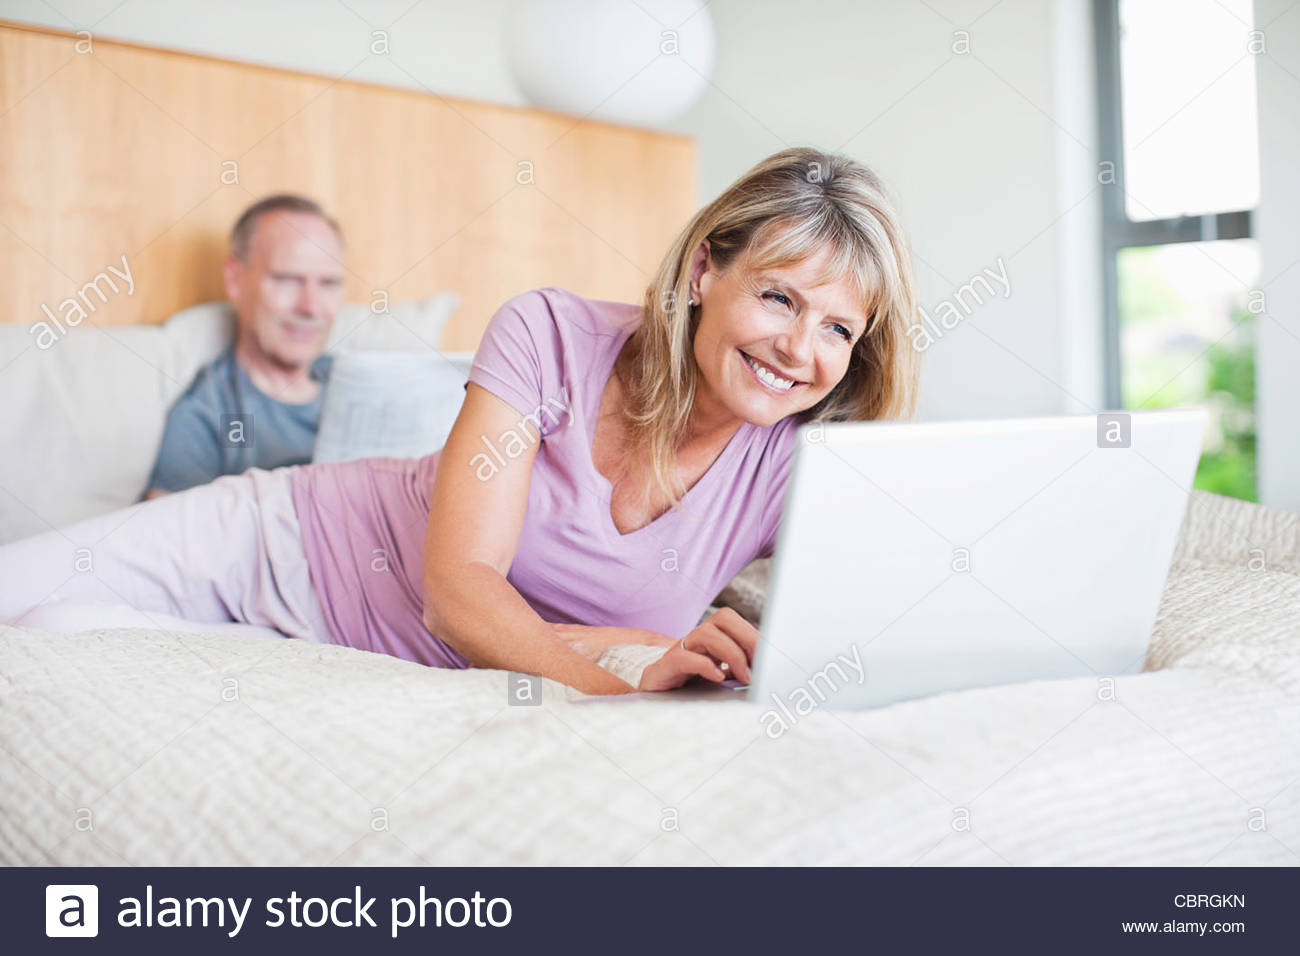 Woman laying on bed using laptop - Stock Image